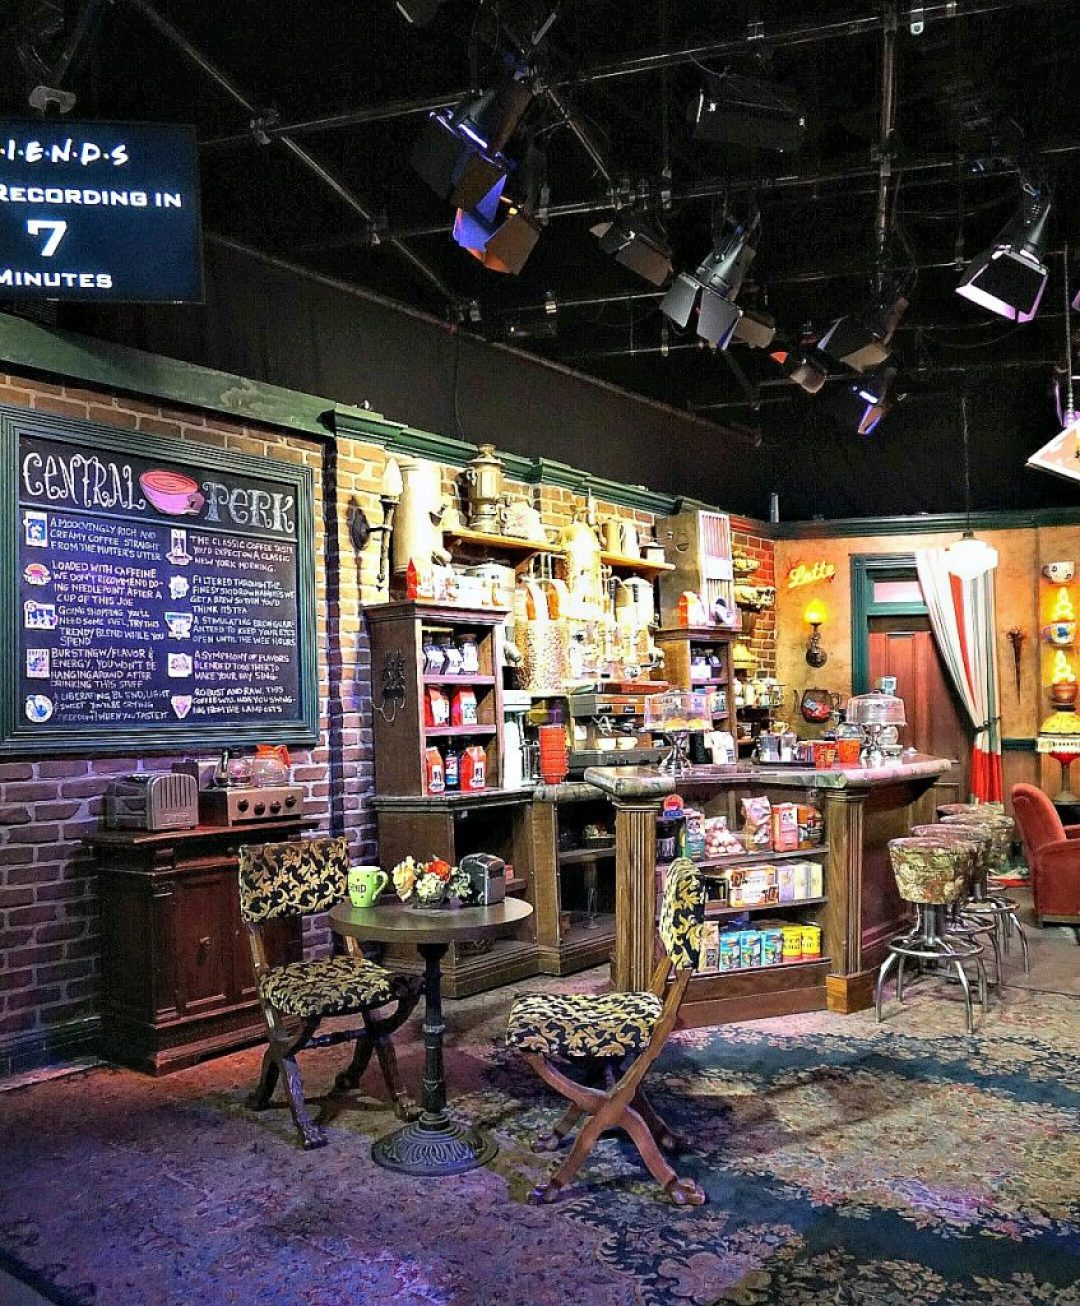 Record your own episode on the Friends set in California!